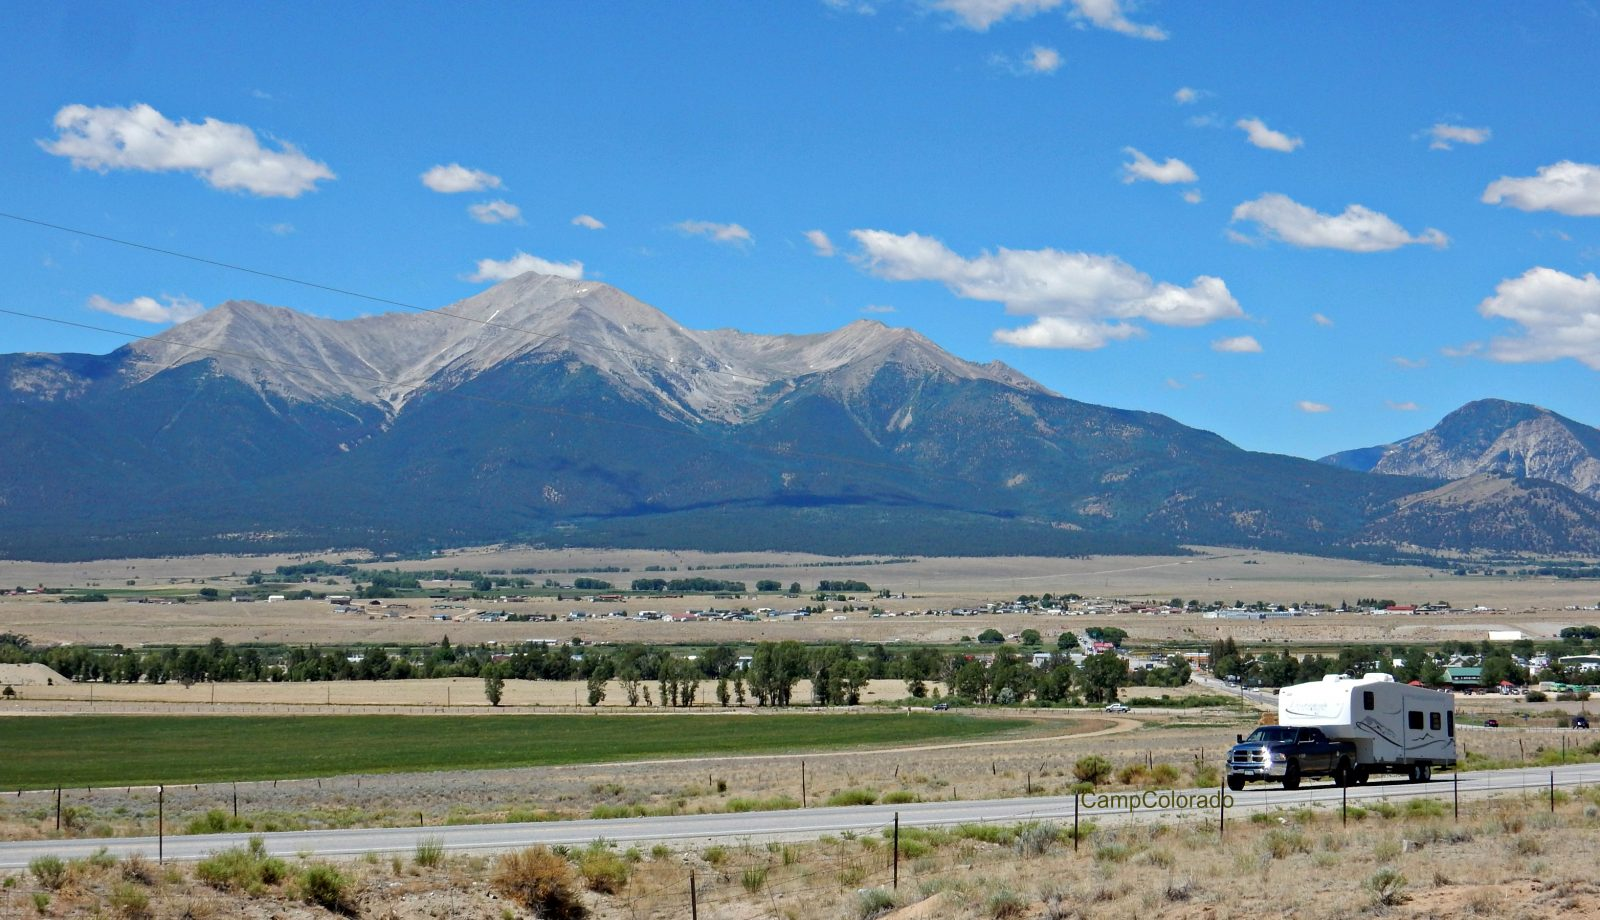 Traveling by RV near Buena Vista Colorado